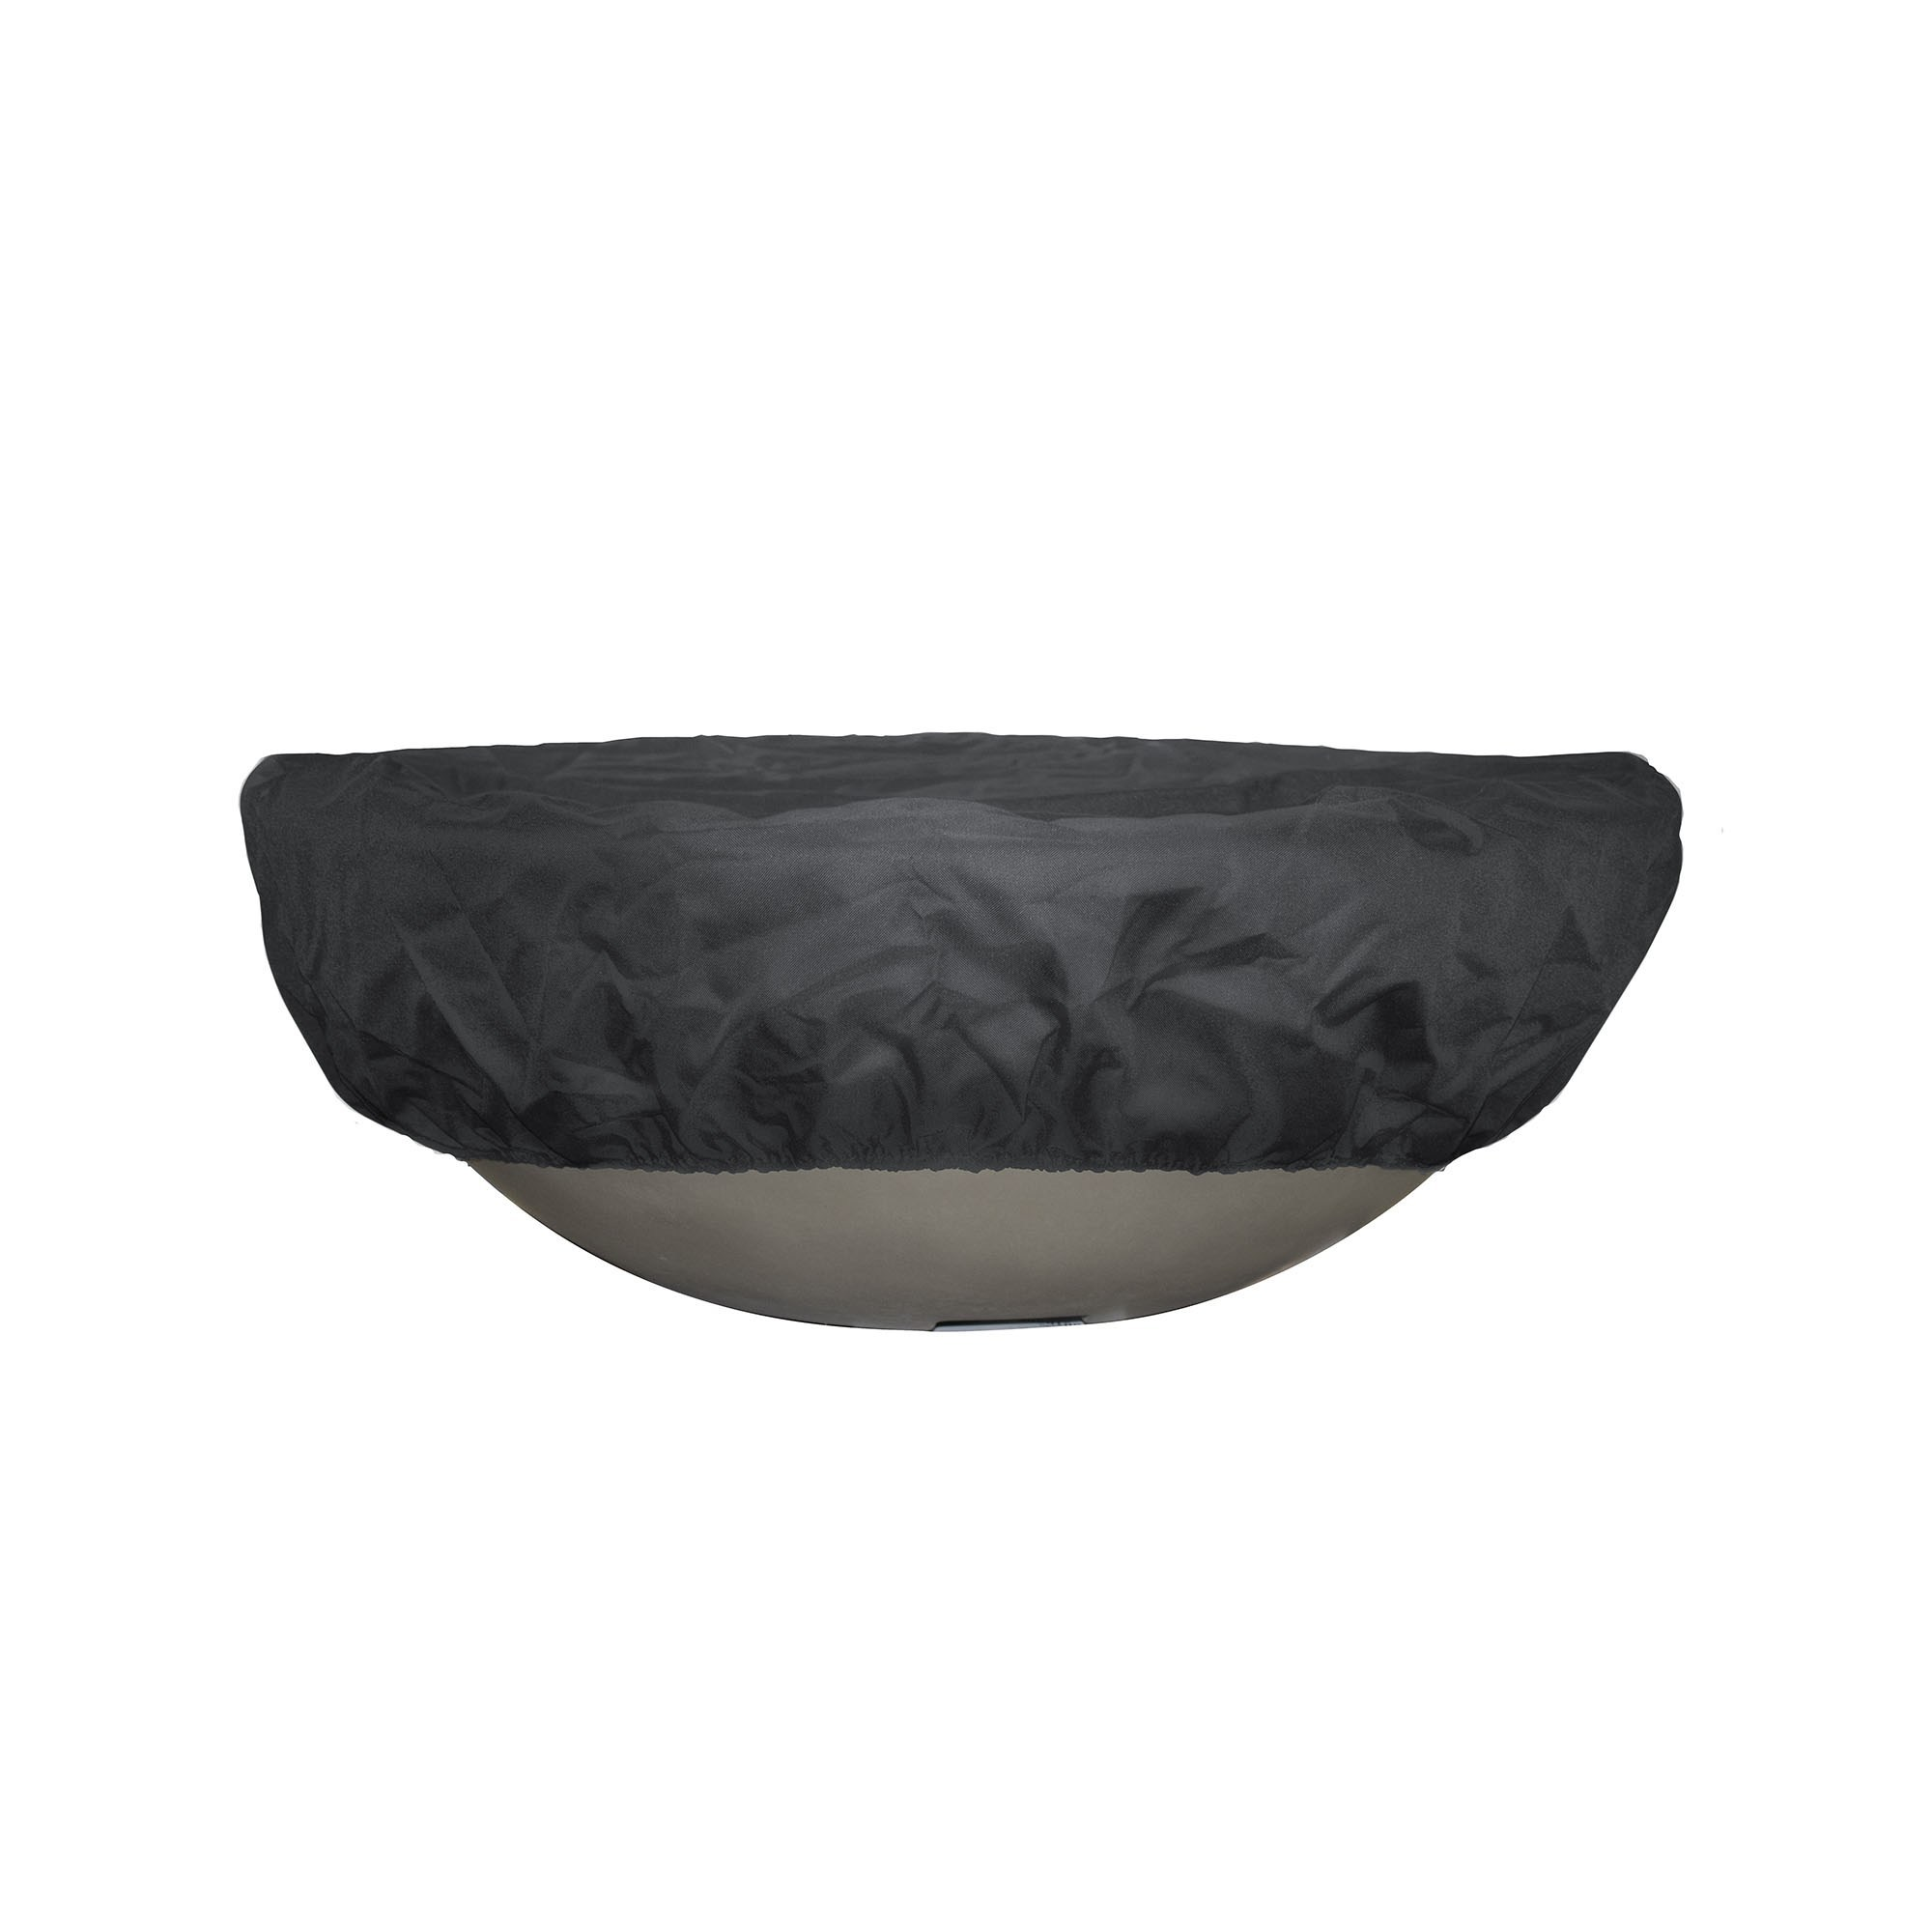 42 Inch Round Fire Pit and Bowl Canvas Cover - Black